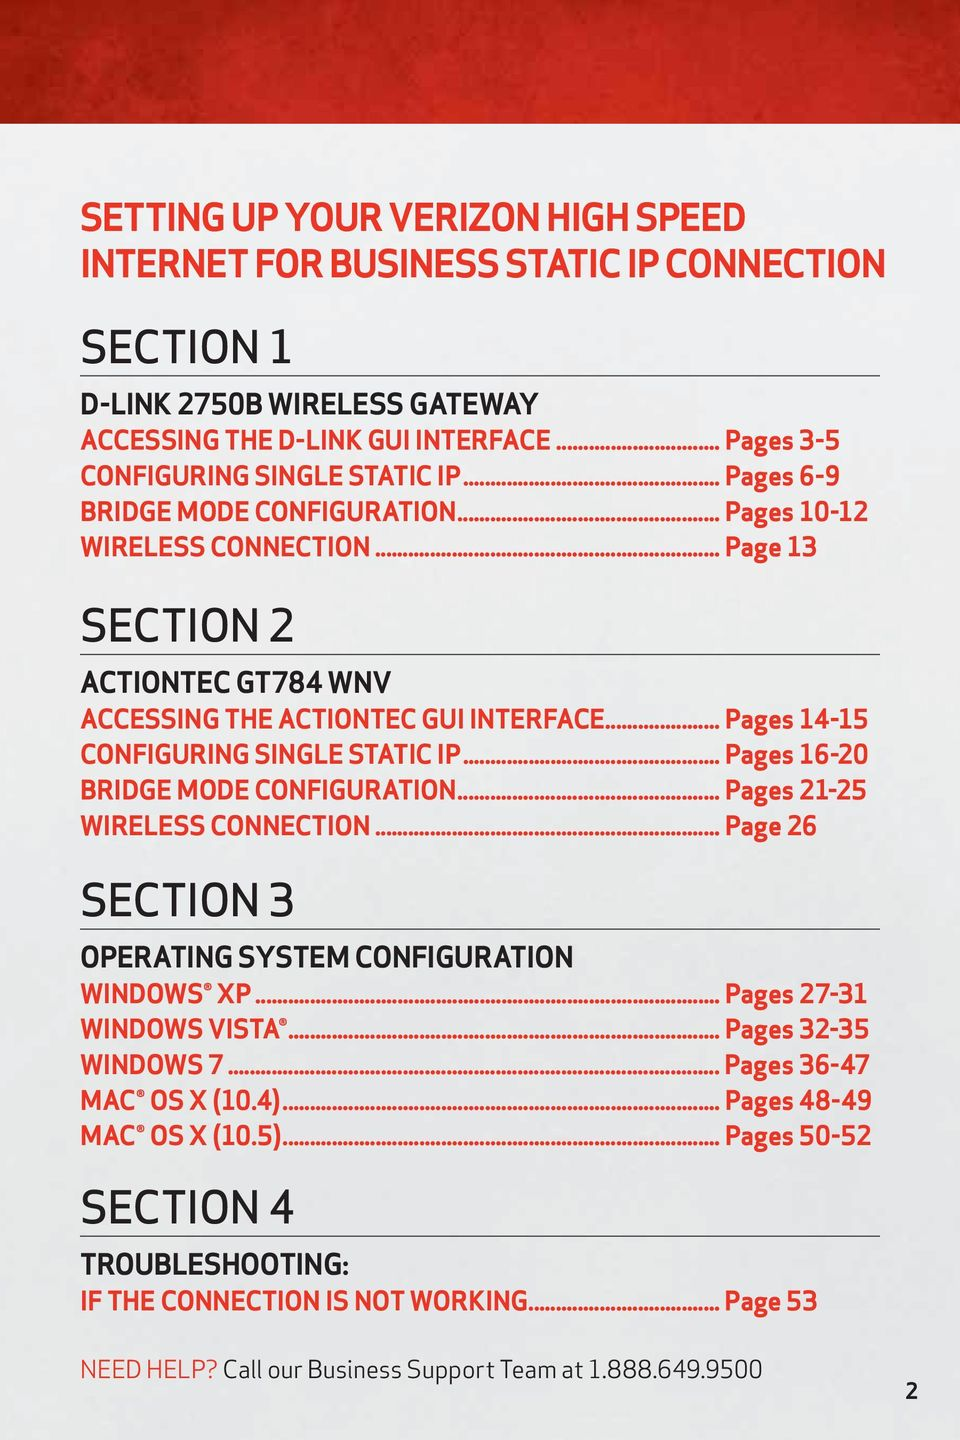 .. Pages 16-20 BRIDGE MODE CONFIGURATION... Pages 21-25 WIRELESS CONNECTION... Page 26 SECTION 3 OPERATING SYSTEM CONFIGURATION WINDOWS XP... Pages 27-31 WINDOWS VISTA... Pages 32-35 WINDOWS 7.